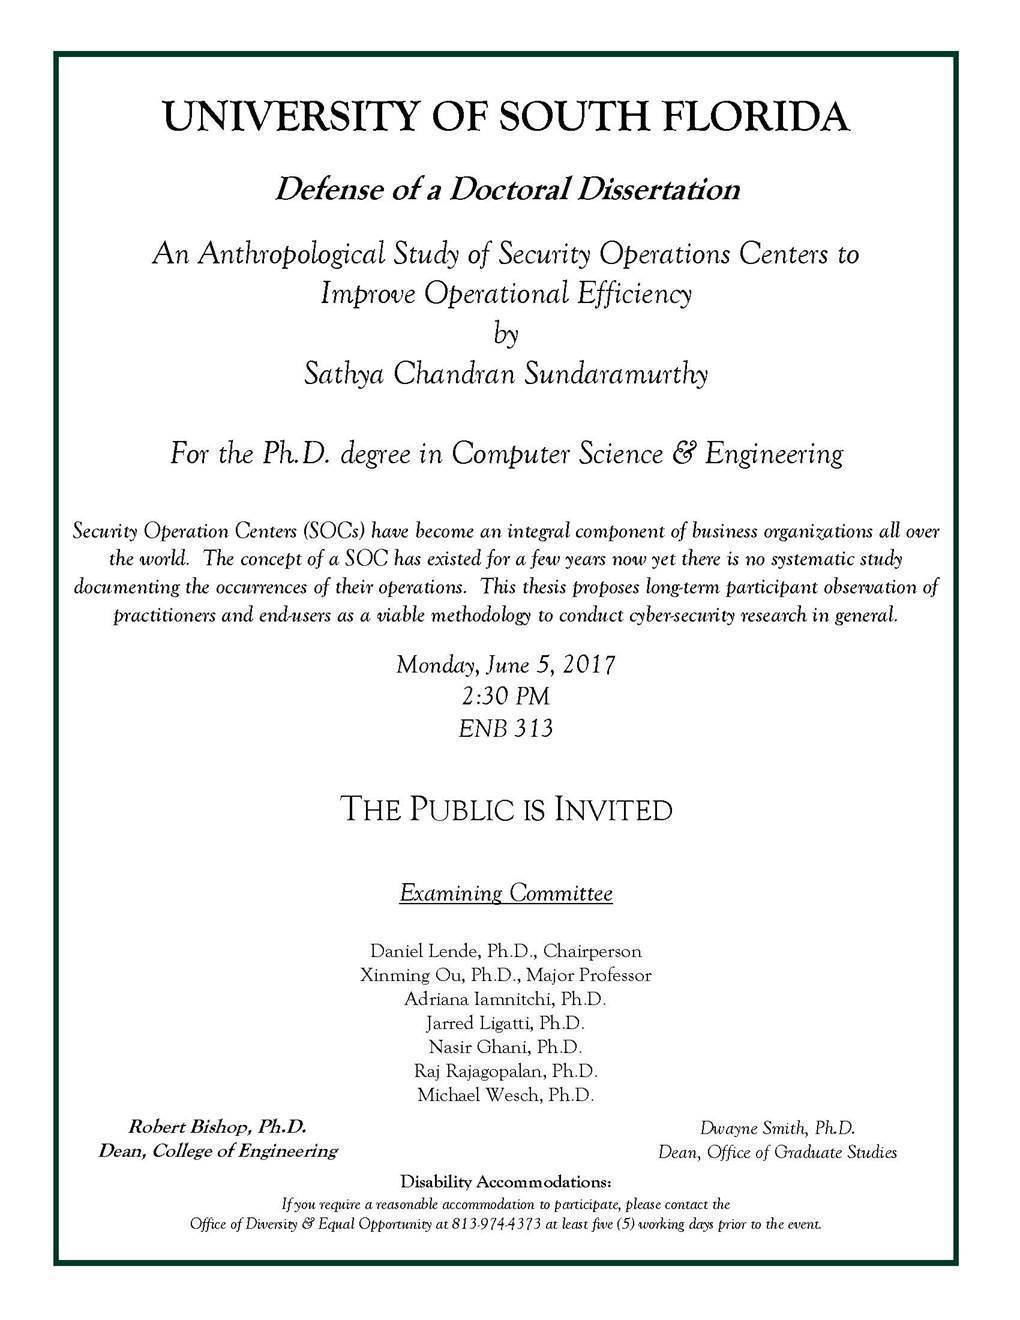 How To End An An Email With Phd Defense: Sathya Chandran Sundaramurthy  2:30 Pm, Enb 313